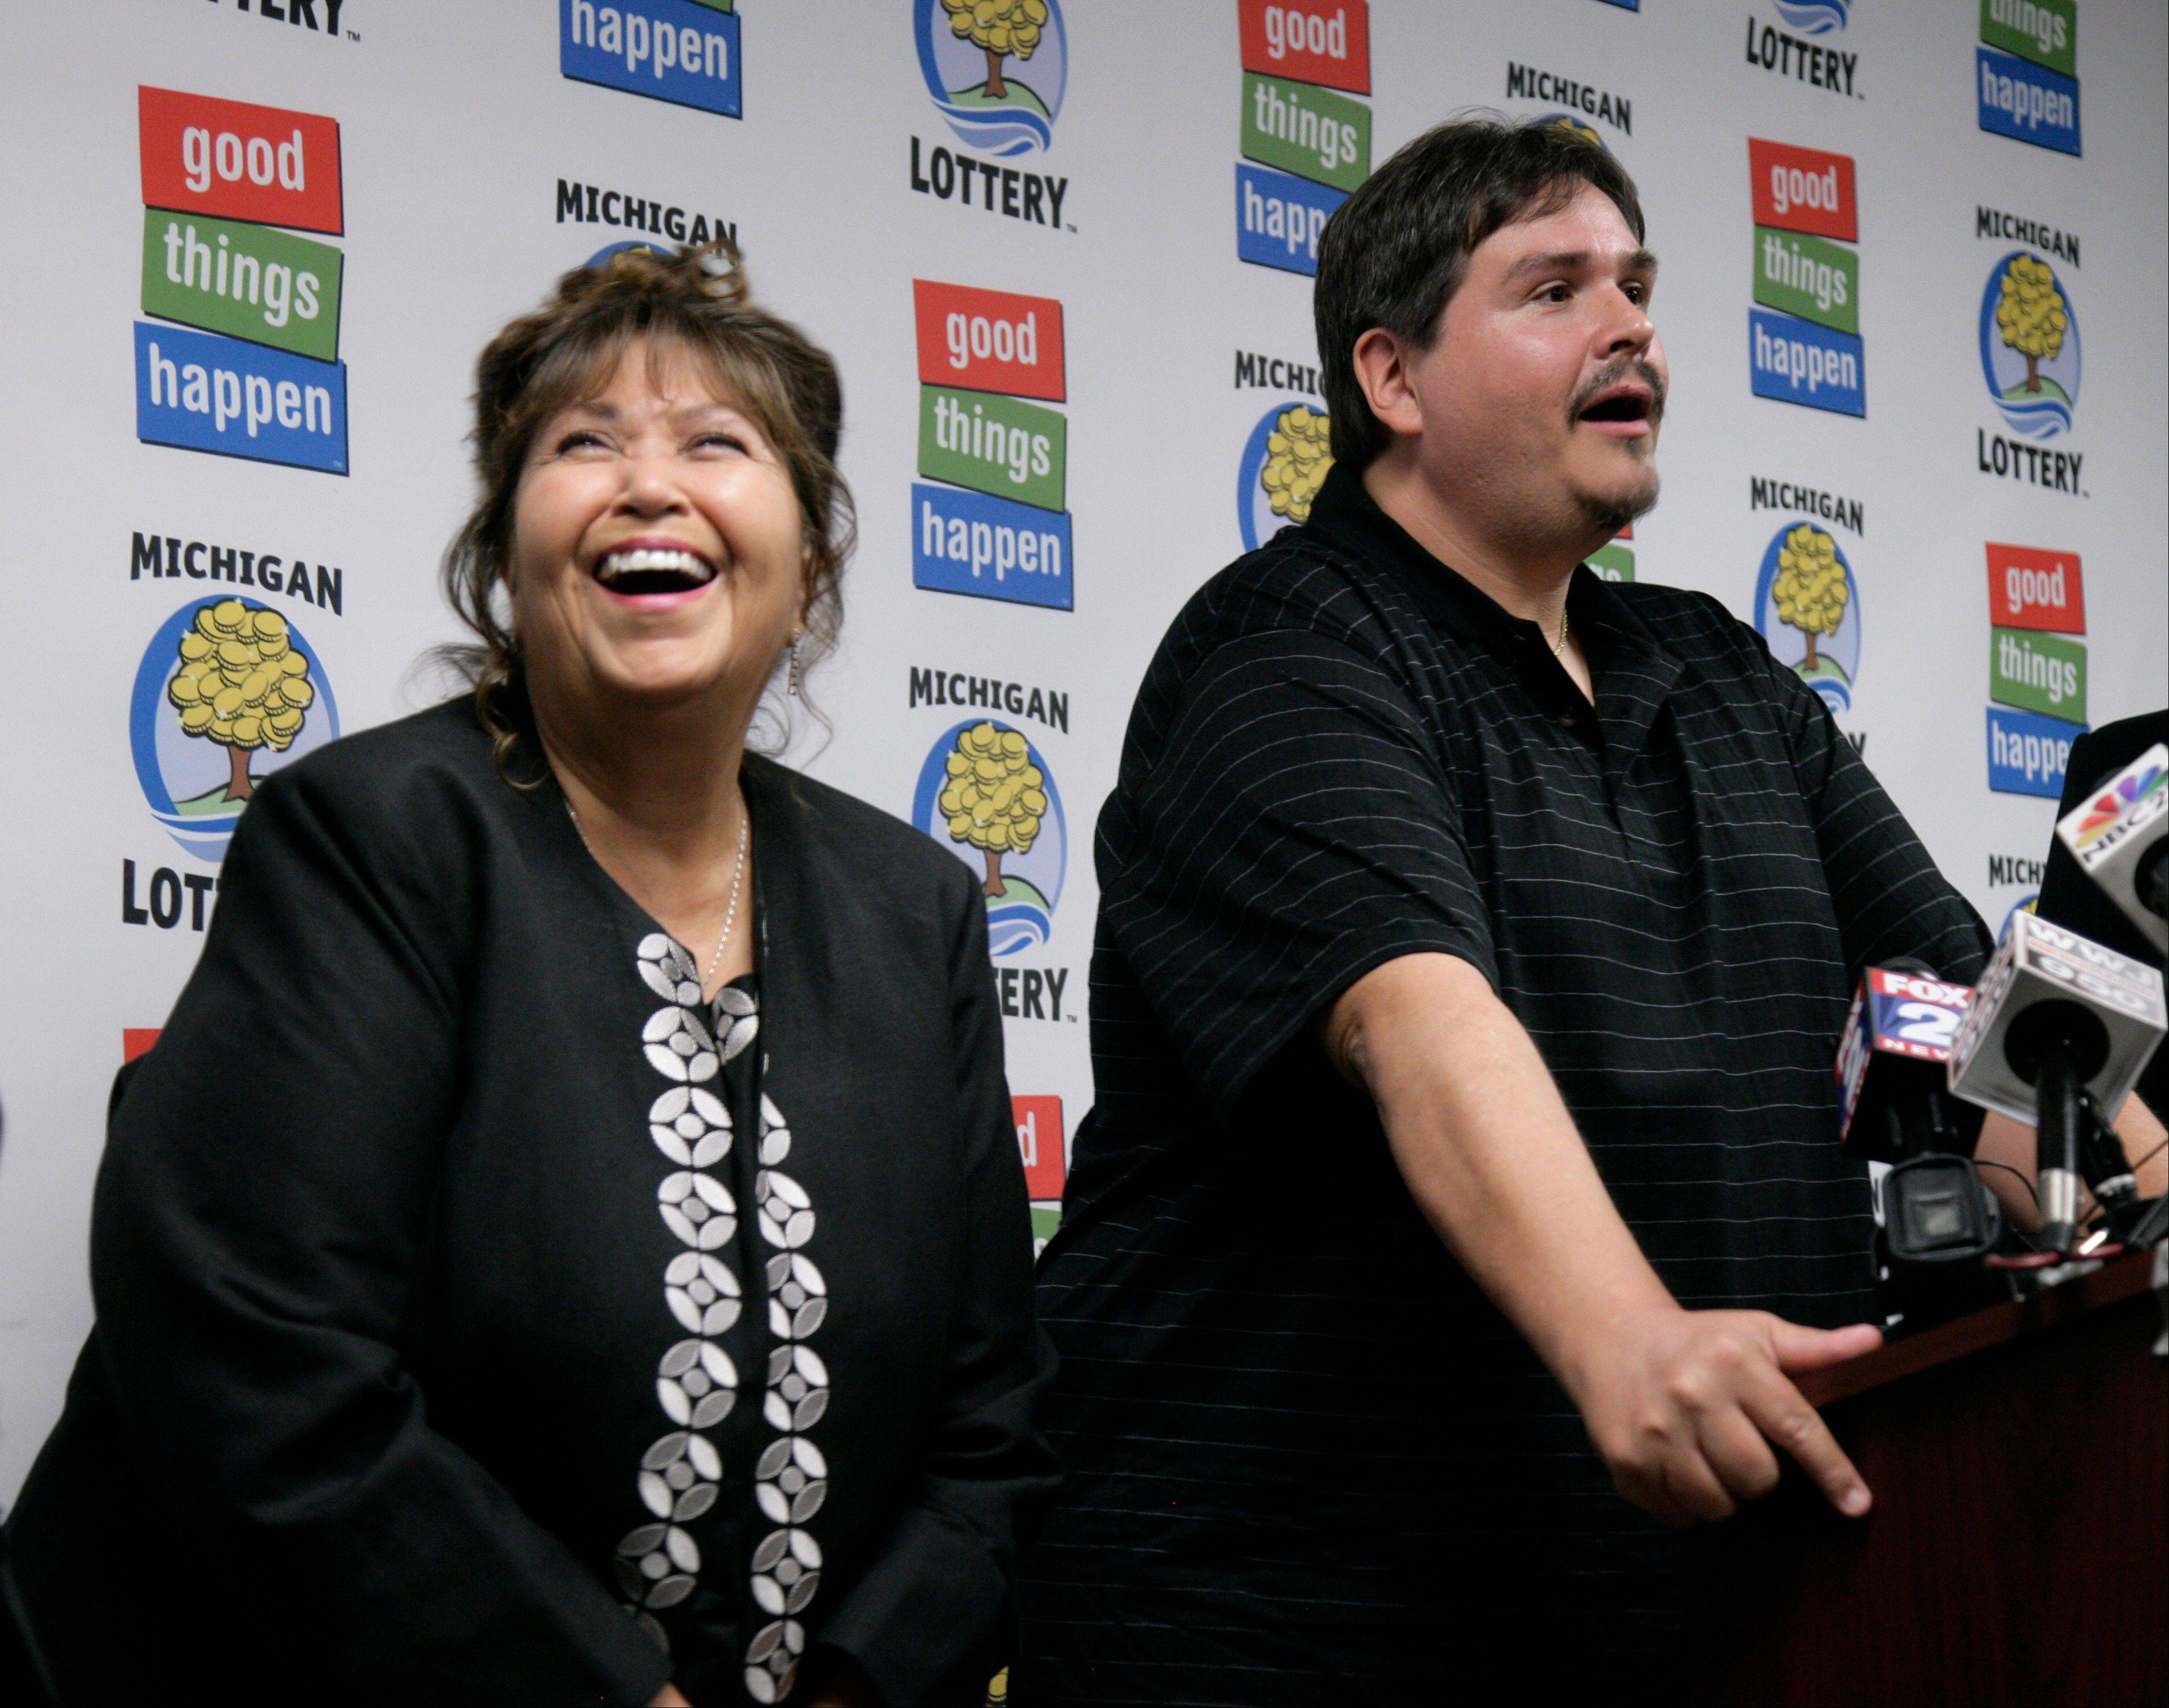 Donald Lawson, a 44-year-old Lapeer, Mich. resident, talks at a news conference Friday in which he claimed the $337 million Powerball prize as his mother, left, laughs. Lawson's mother asked to remain anonymous.